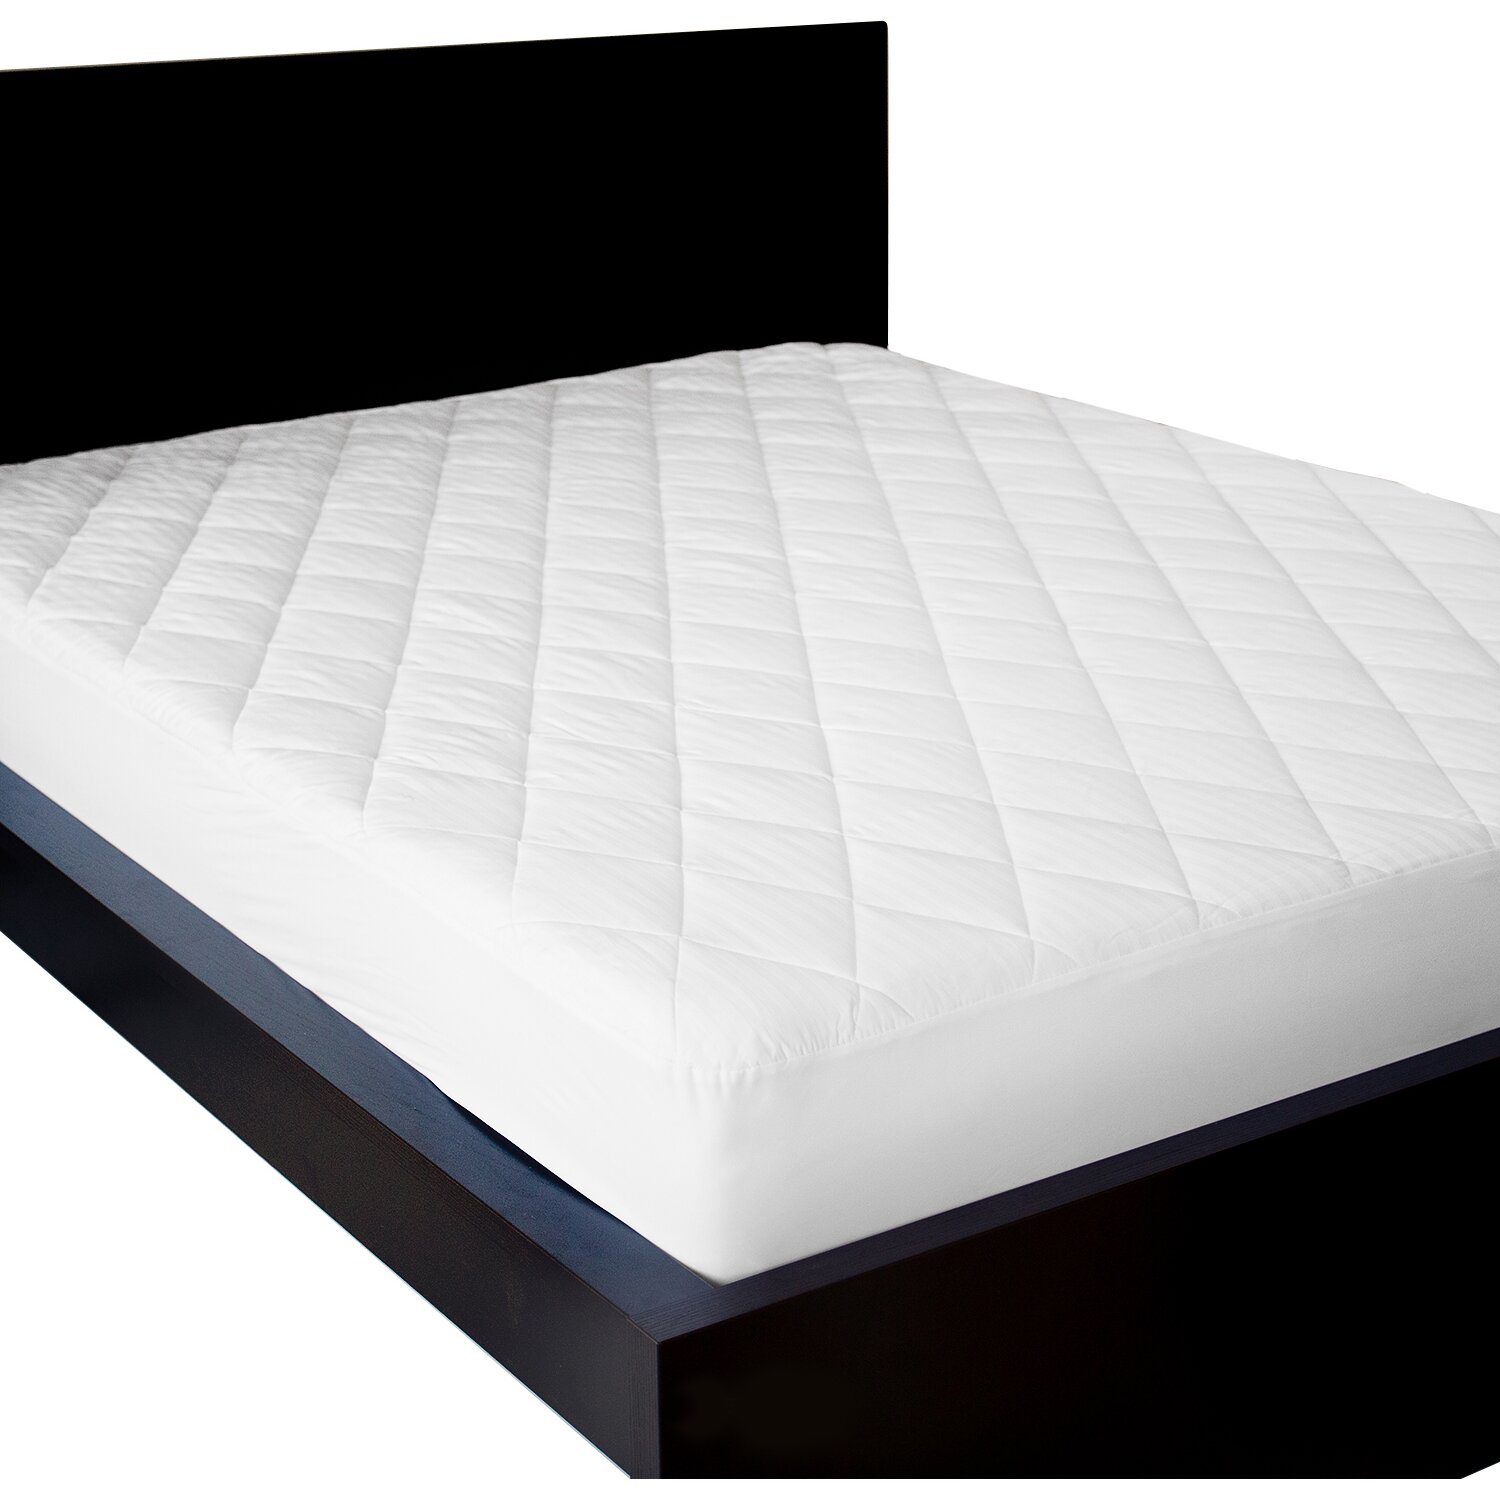 Malouf Down Alternative Mattress Pad & Reviews